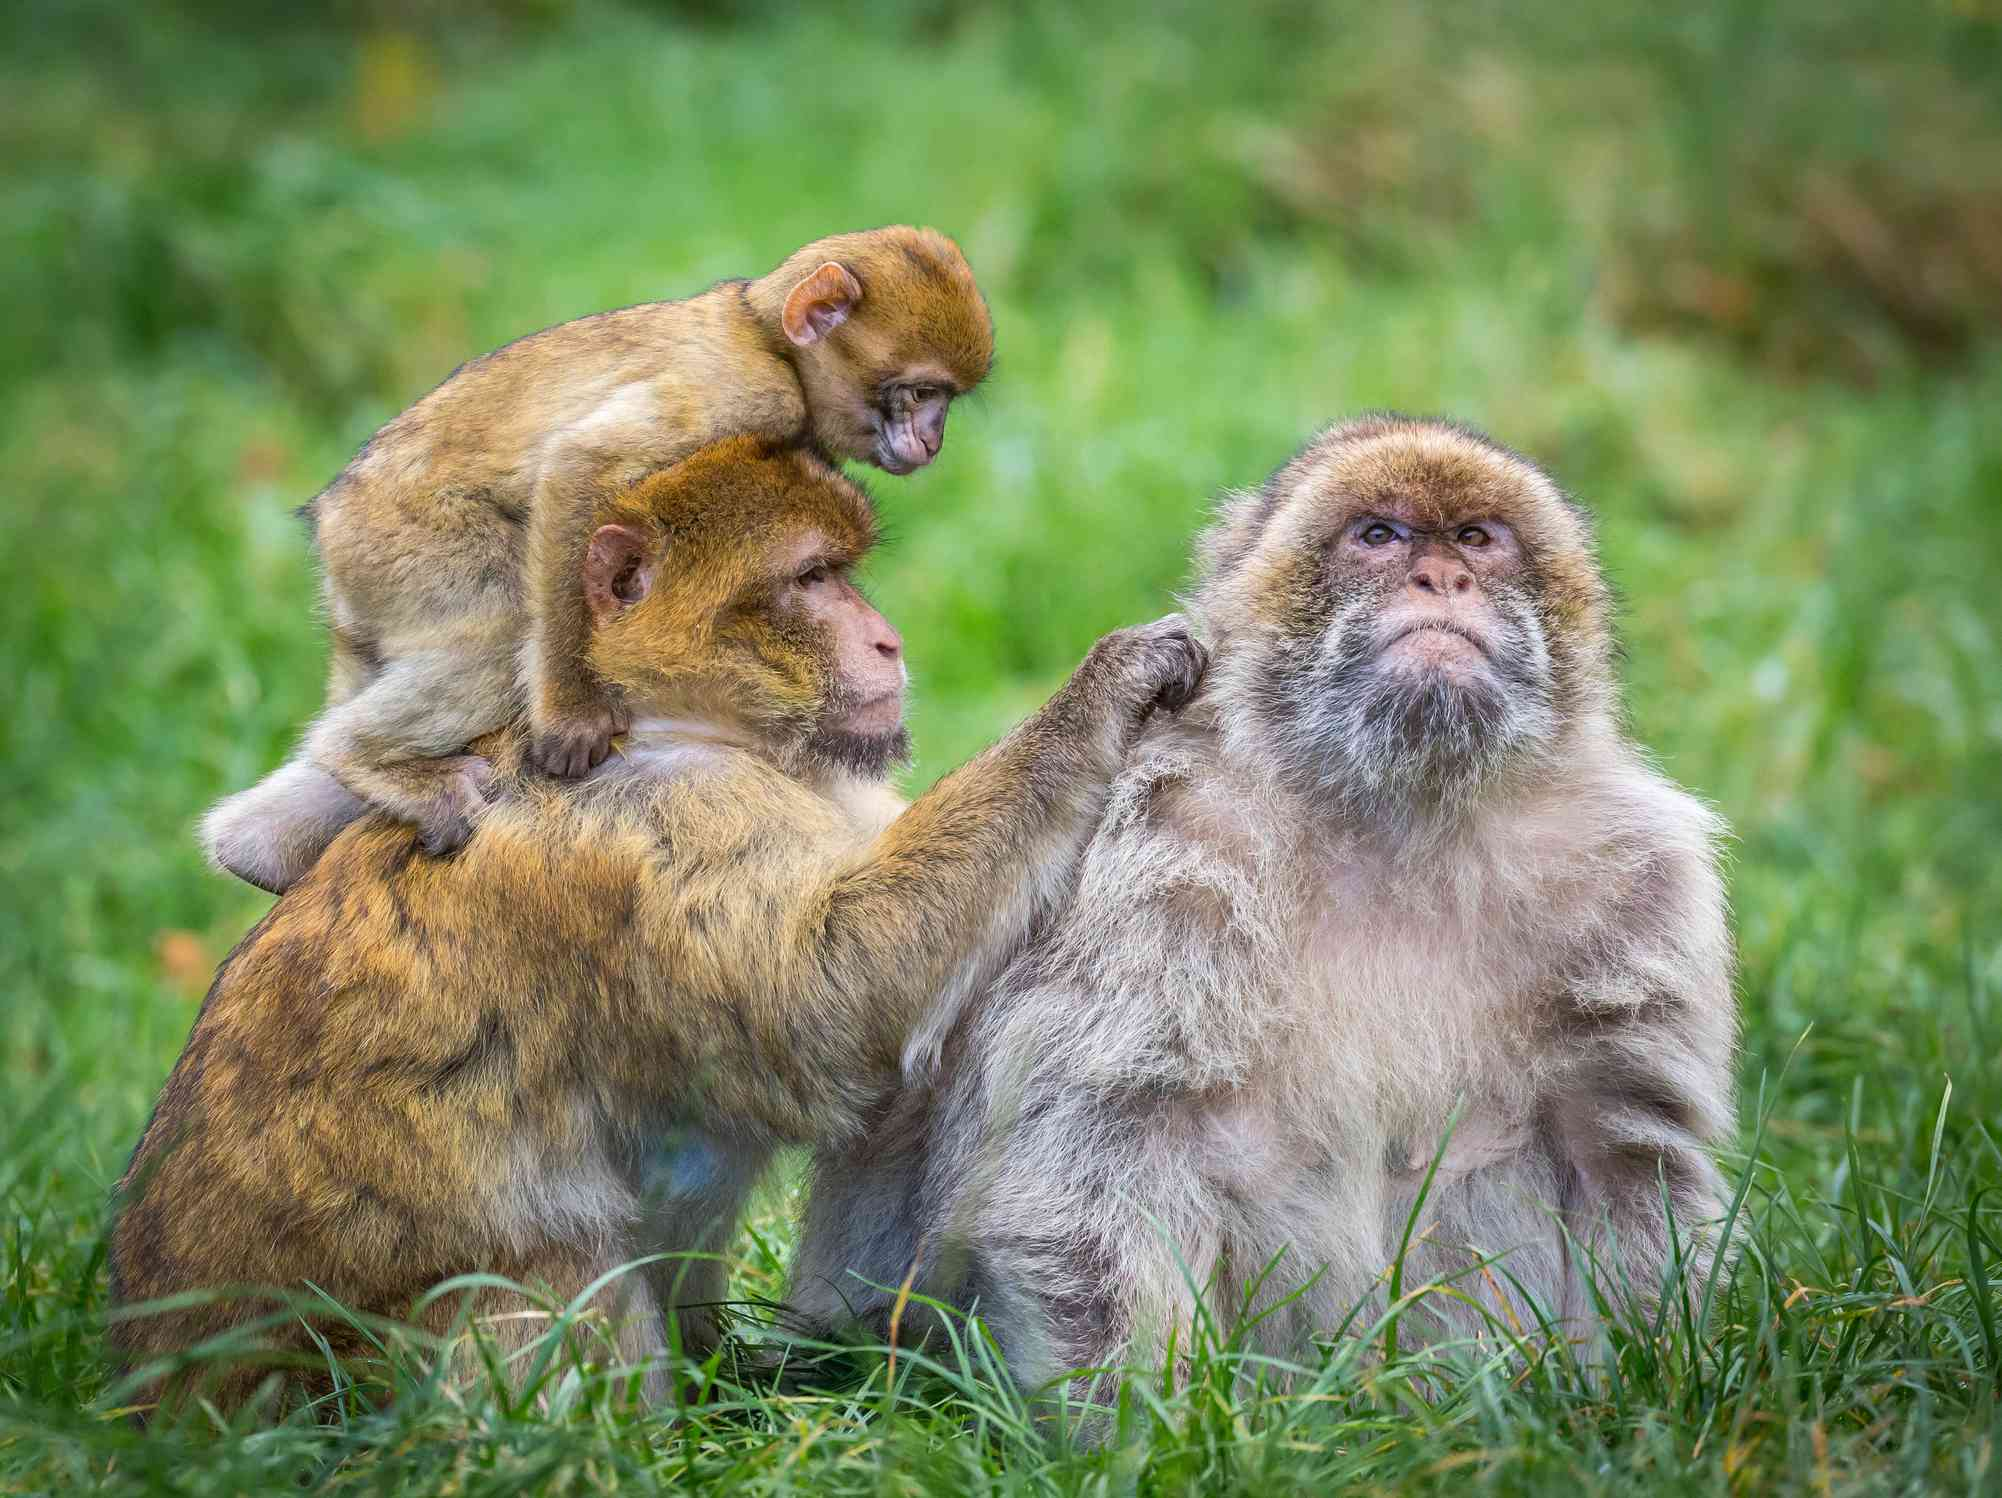 Family of three Barbary macaques sitting in grass